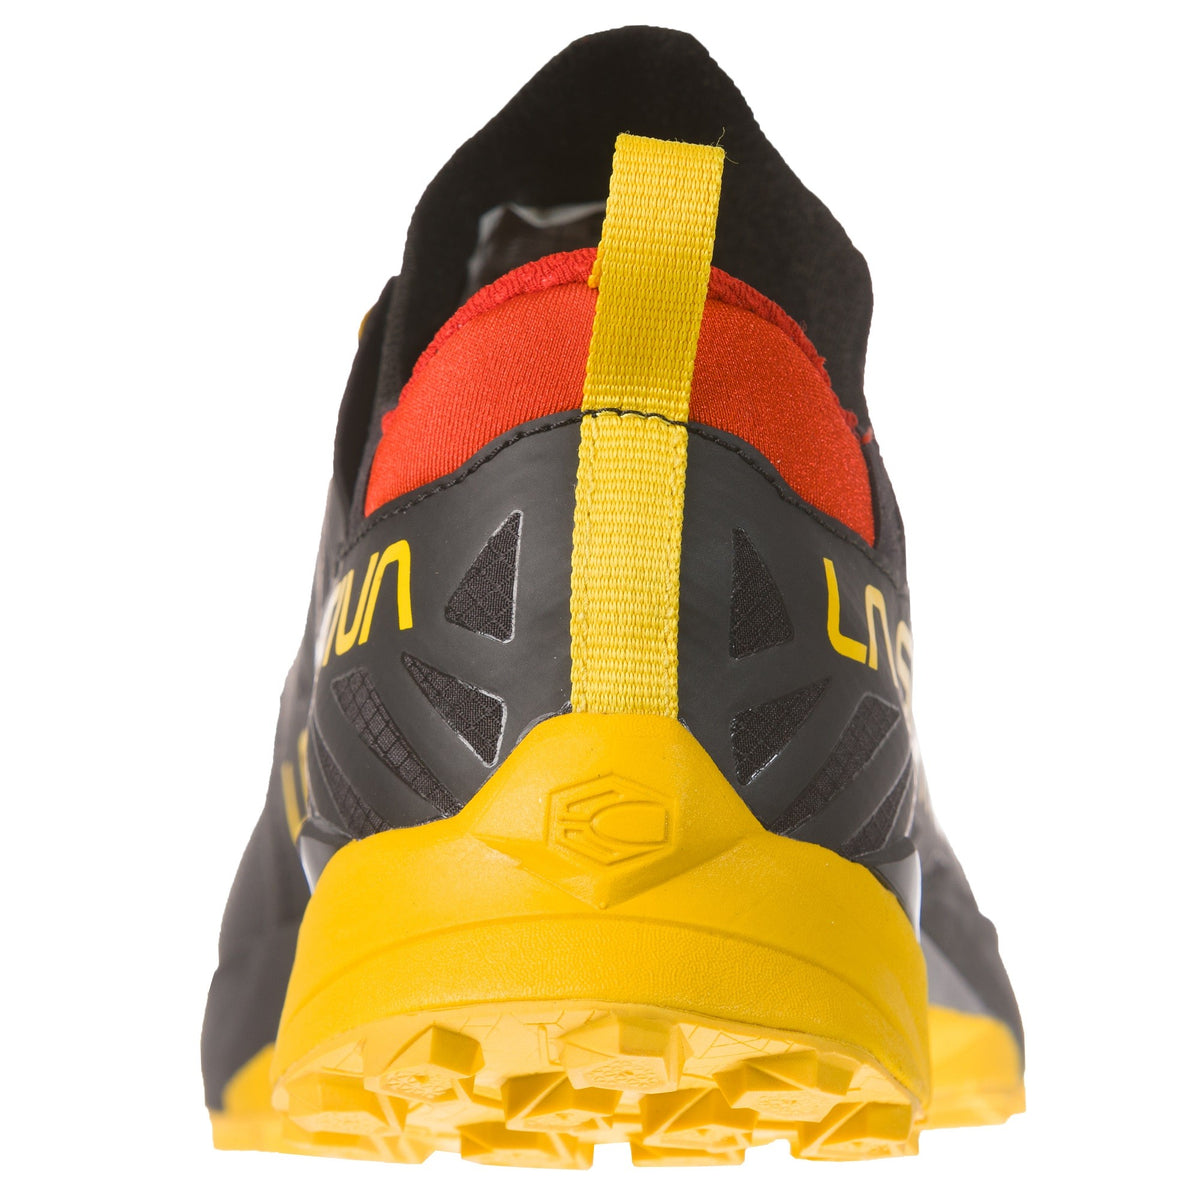 La Sportiva Kaptiva trail shoe, view of the heel